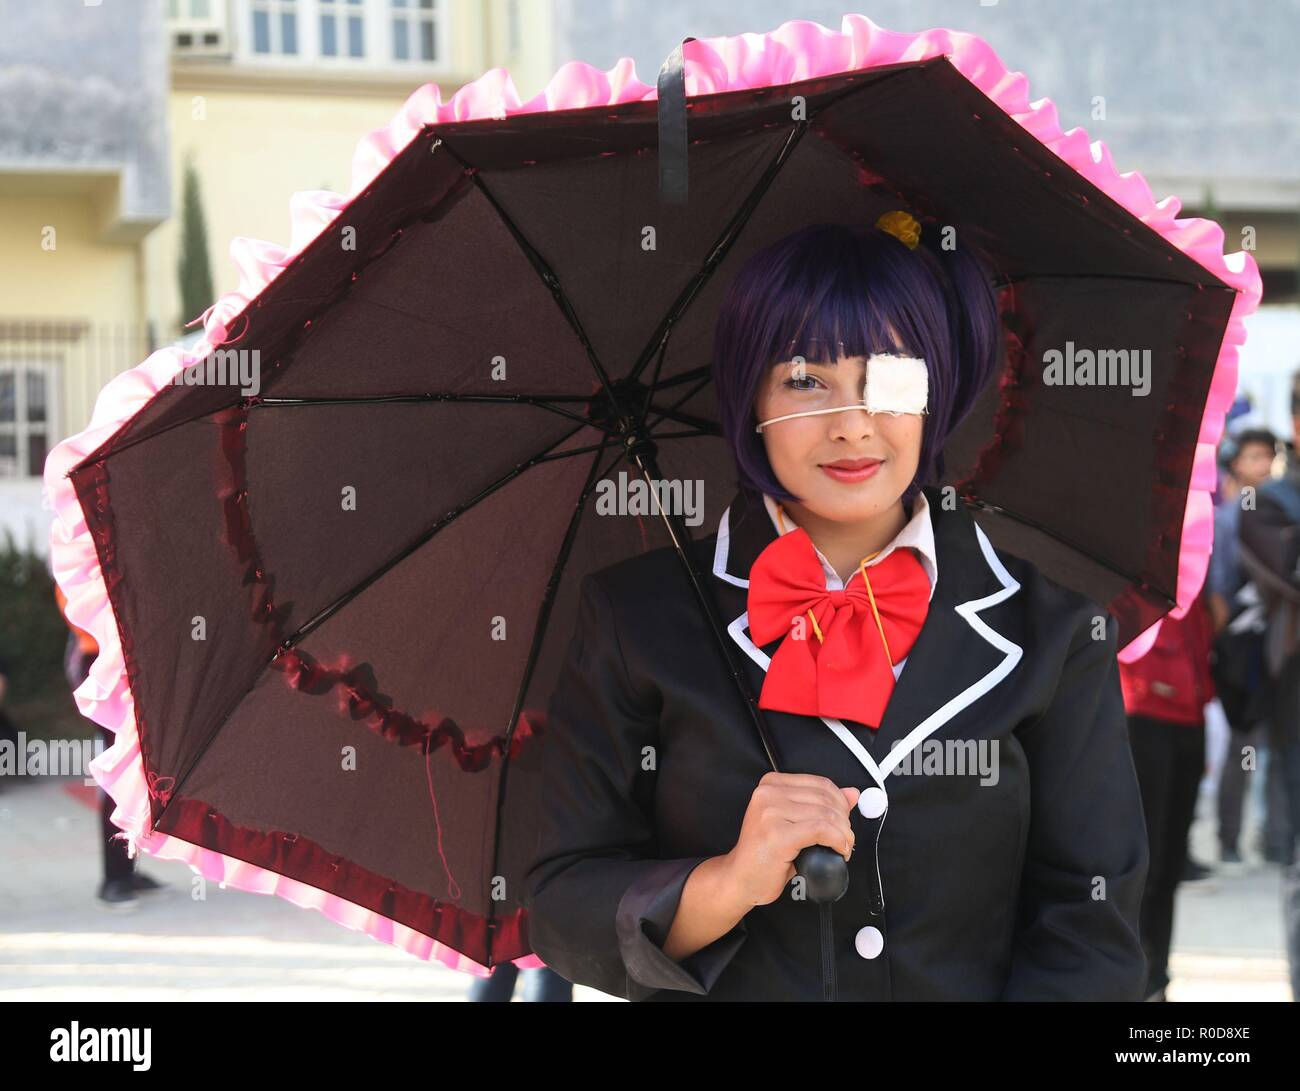 Lalitpur Nepal 3rd Nov 2018 A Girl Dressed In Cosplay Costume